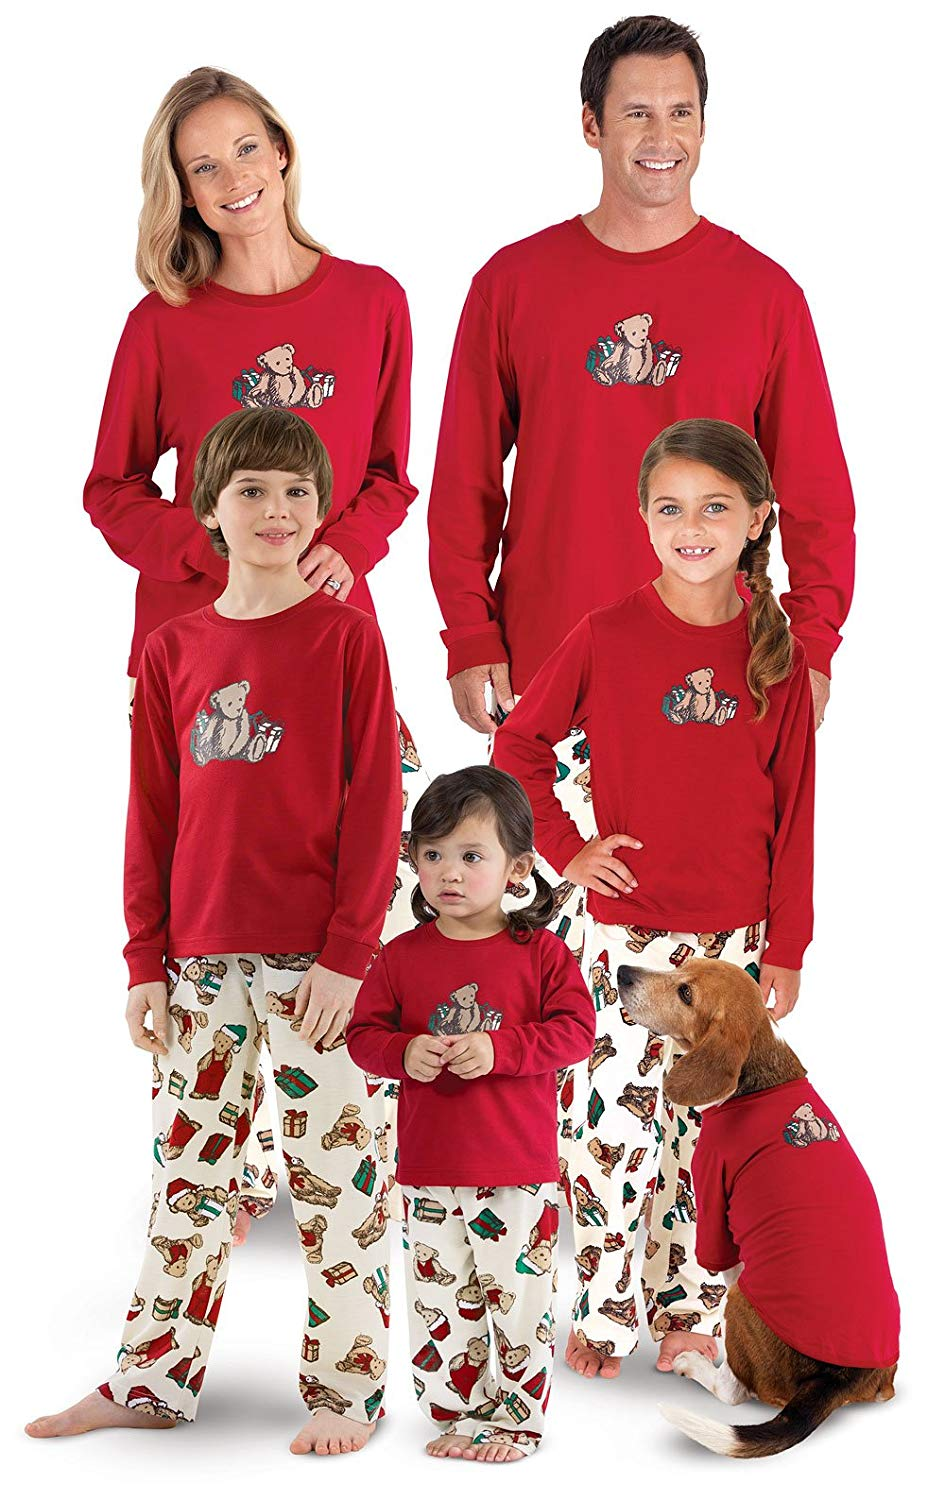 bc6a14d7a0 Get Quotations · PajamaGram Vermont Teddy Bear Christmas Matching Family  Pajamas